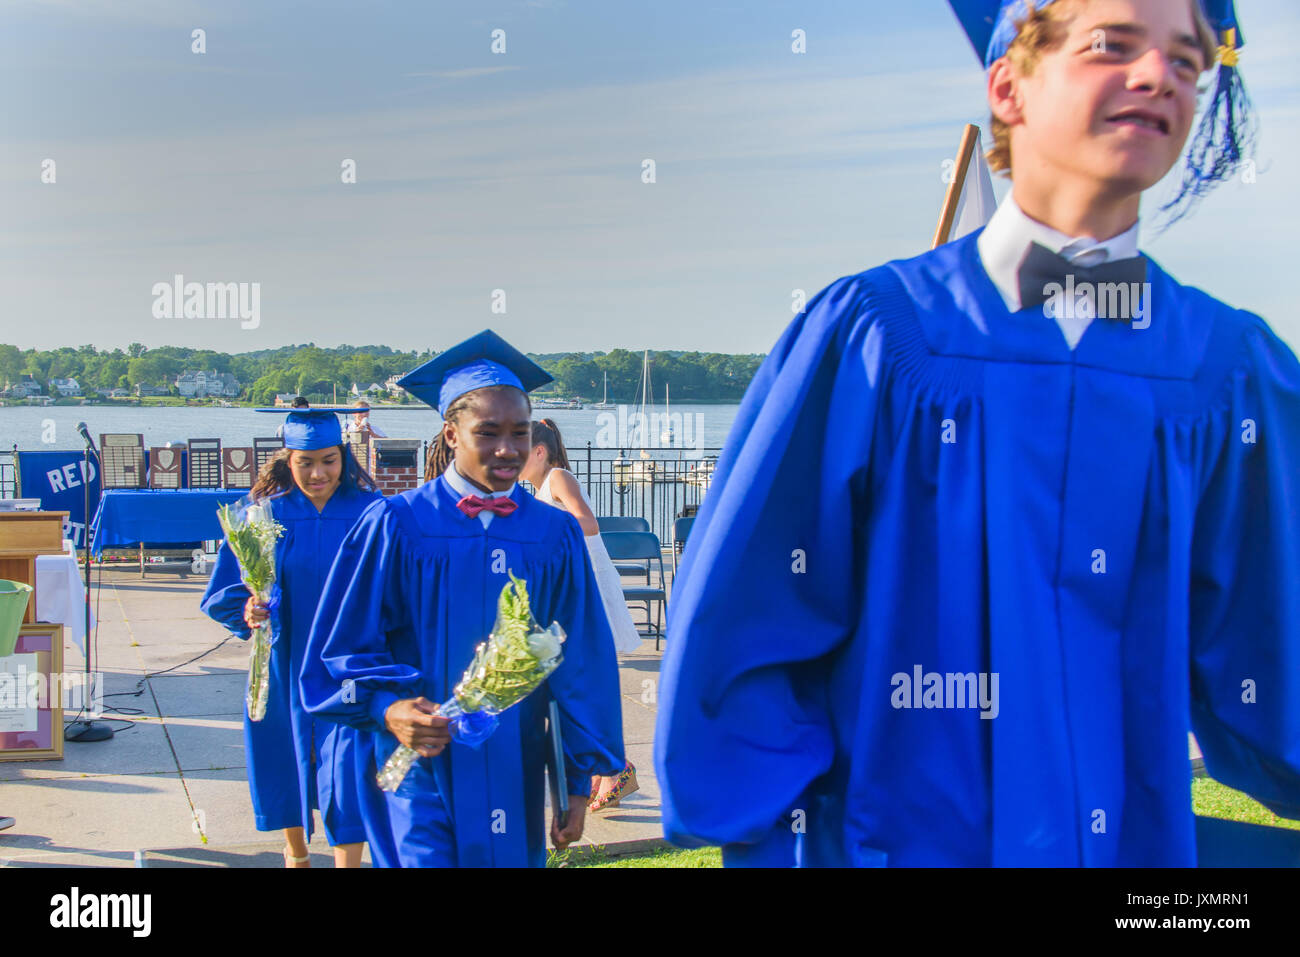 Students in graduation gowns, at graduation ceremony - Stock Image